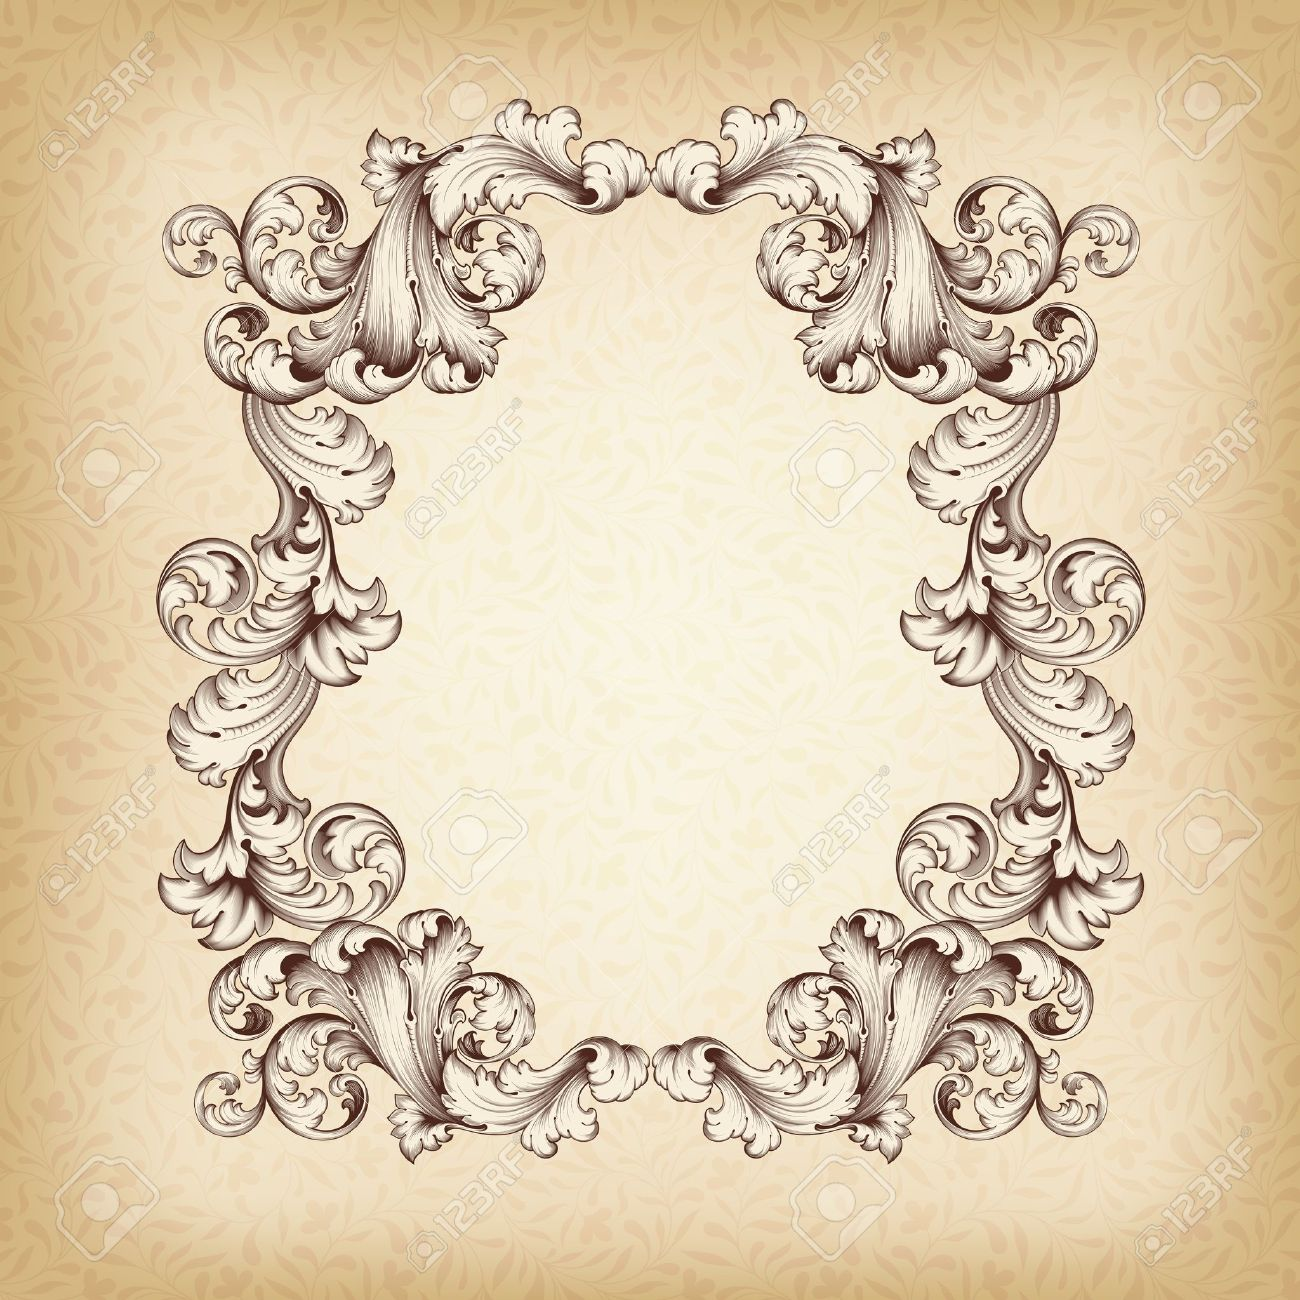 vintage border frame engraving with retro ornament pattern in antique baroque style decorative design - 18881965